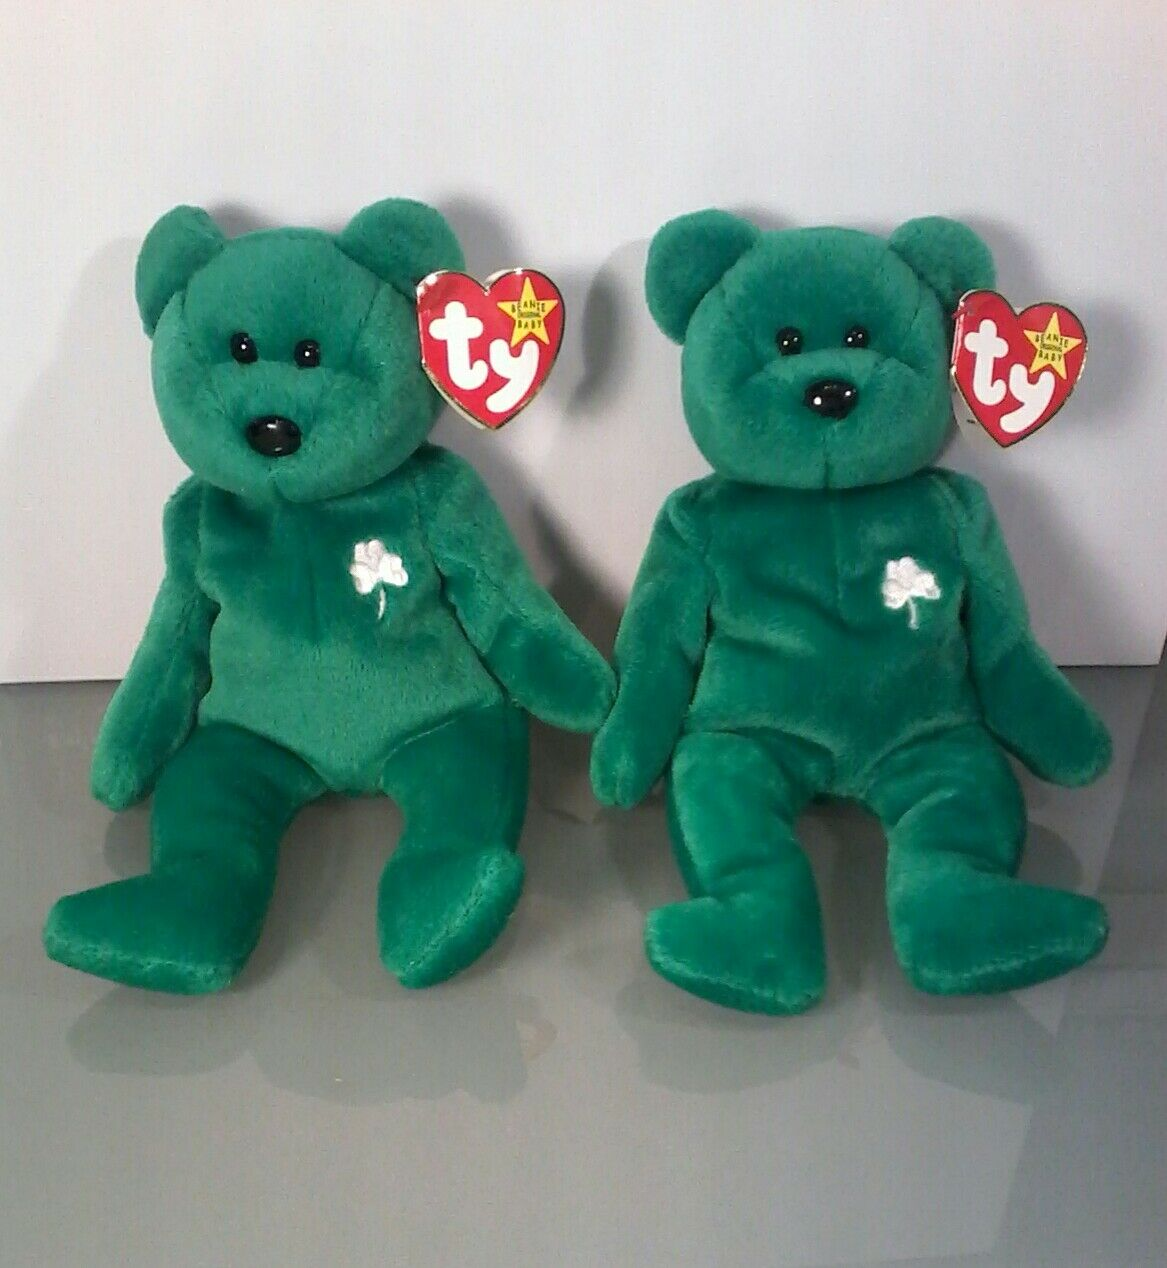 Two Extremely Rare Beanie Babies Erin With Errors and Rarities